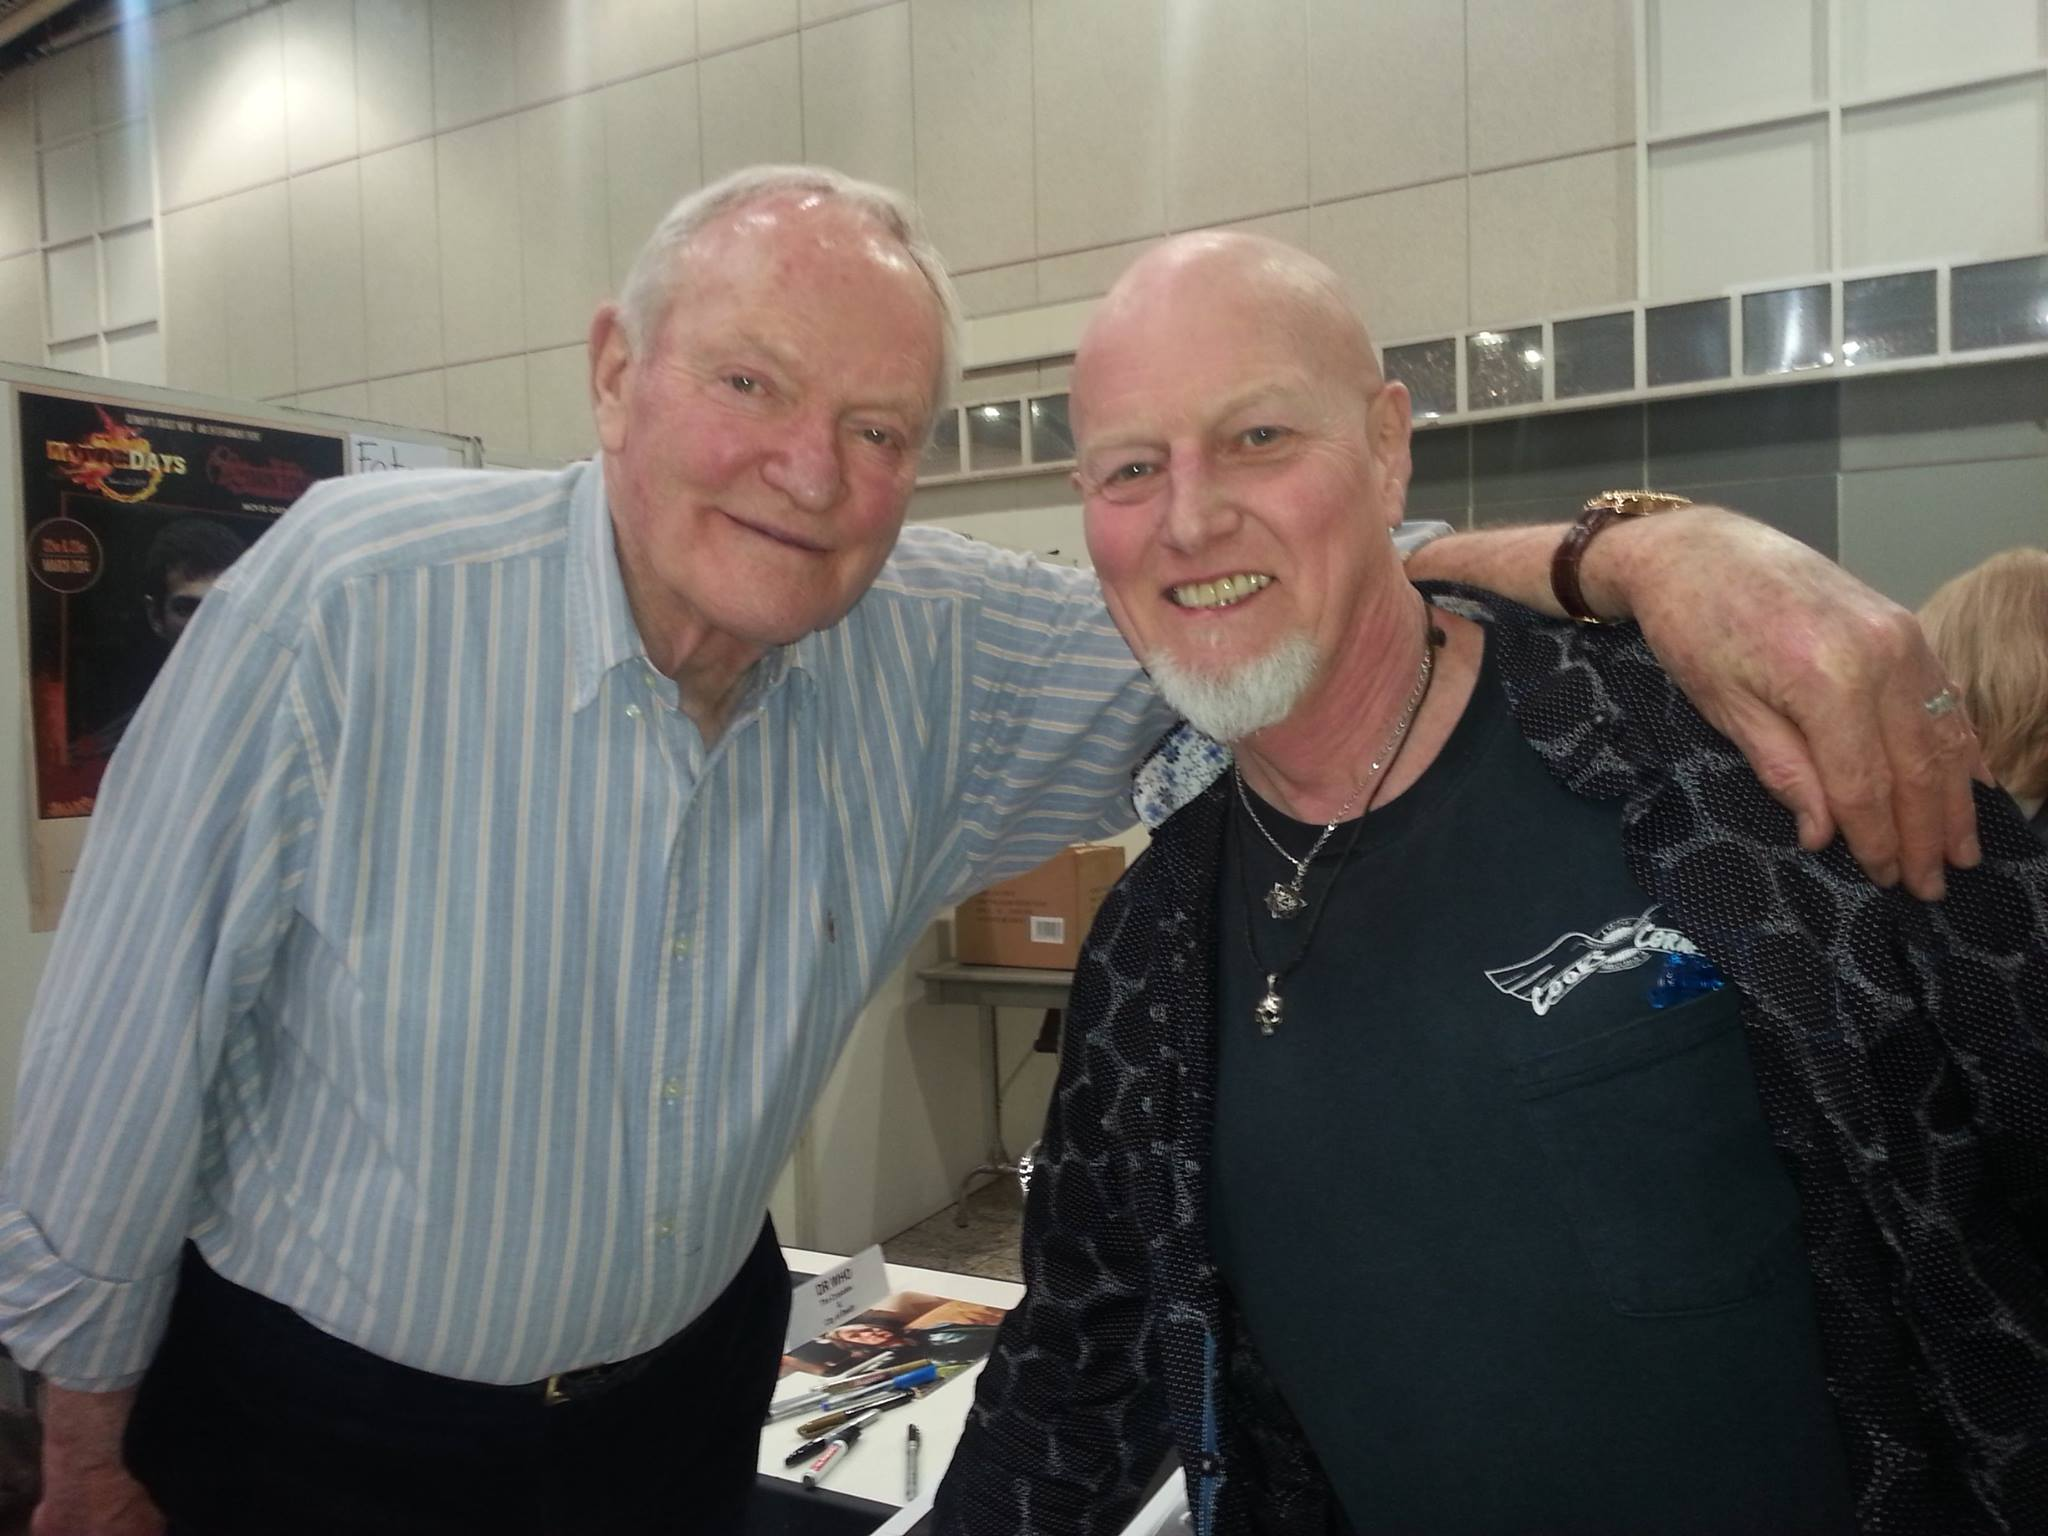 Chris Slade and Julian Glover